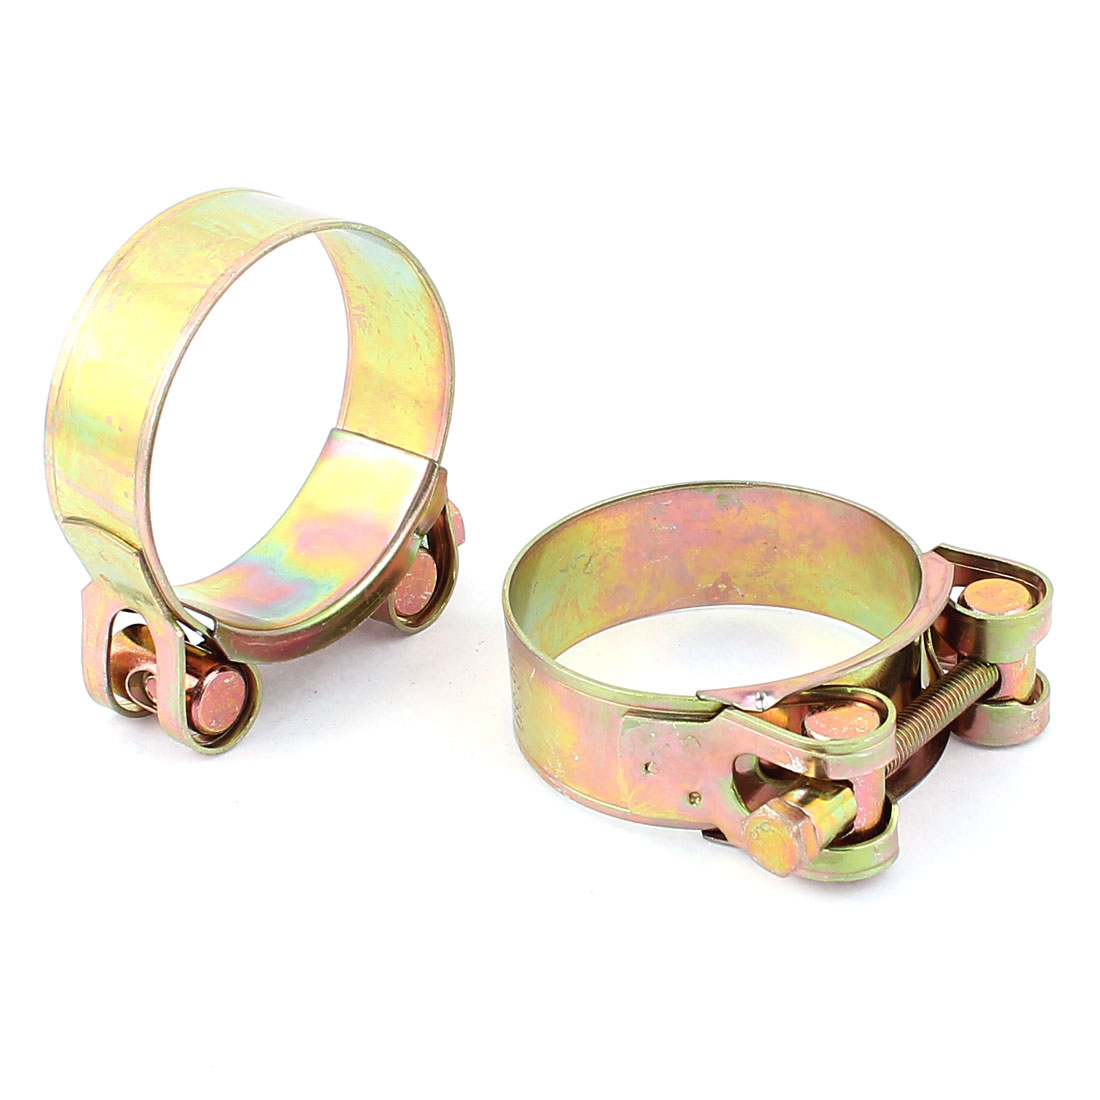 56-59mm Adjustable Range Water Oil Hose Clamp Clips Brass Tone 2pcs